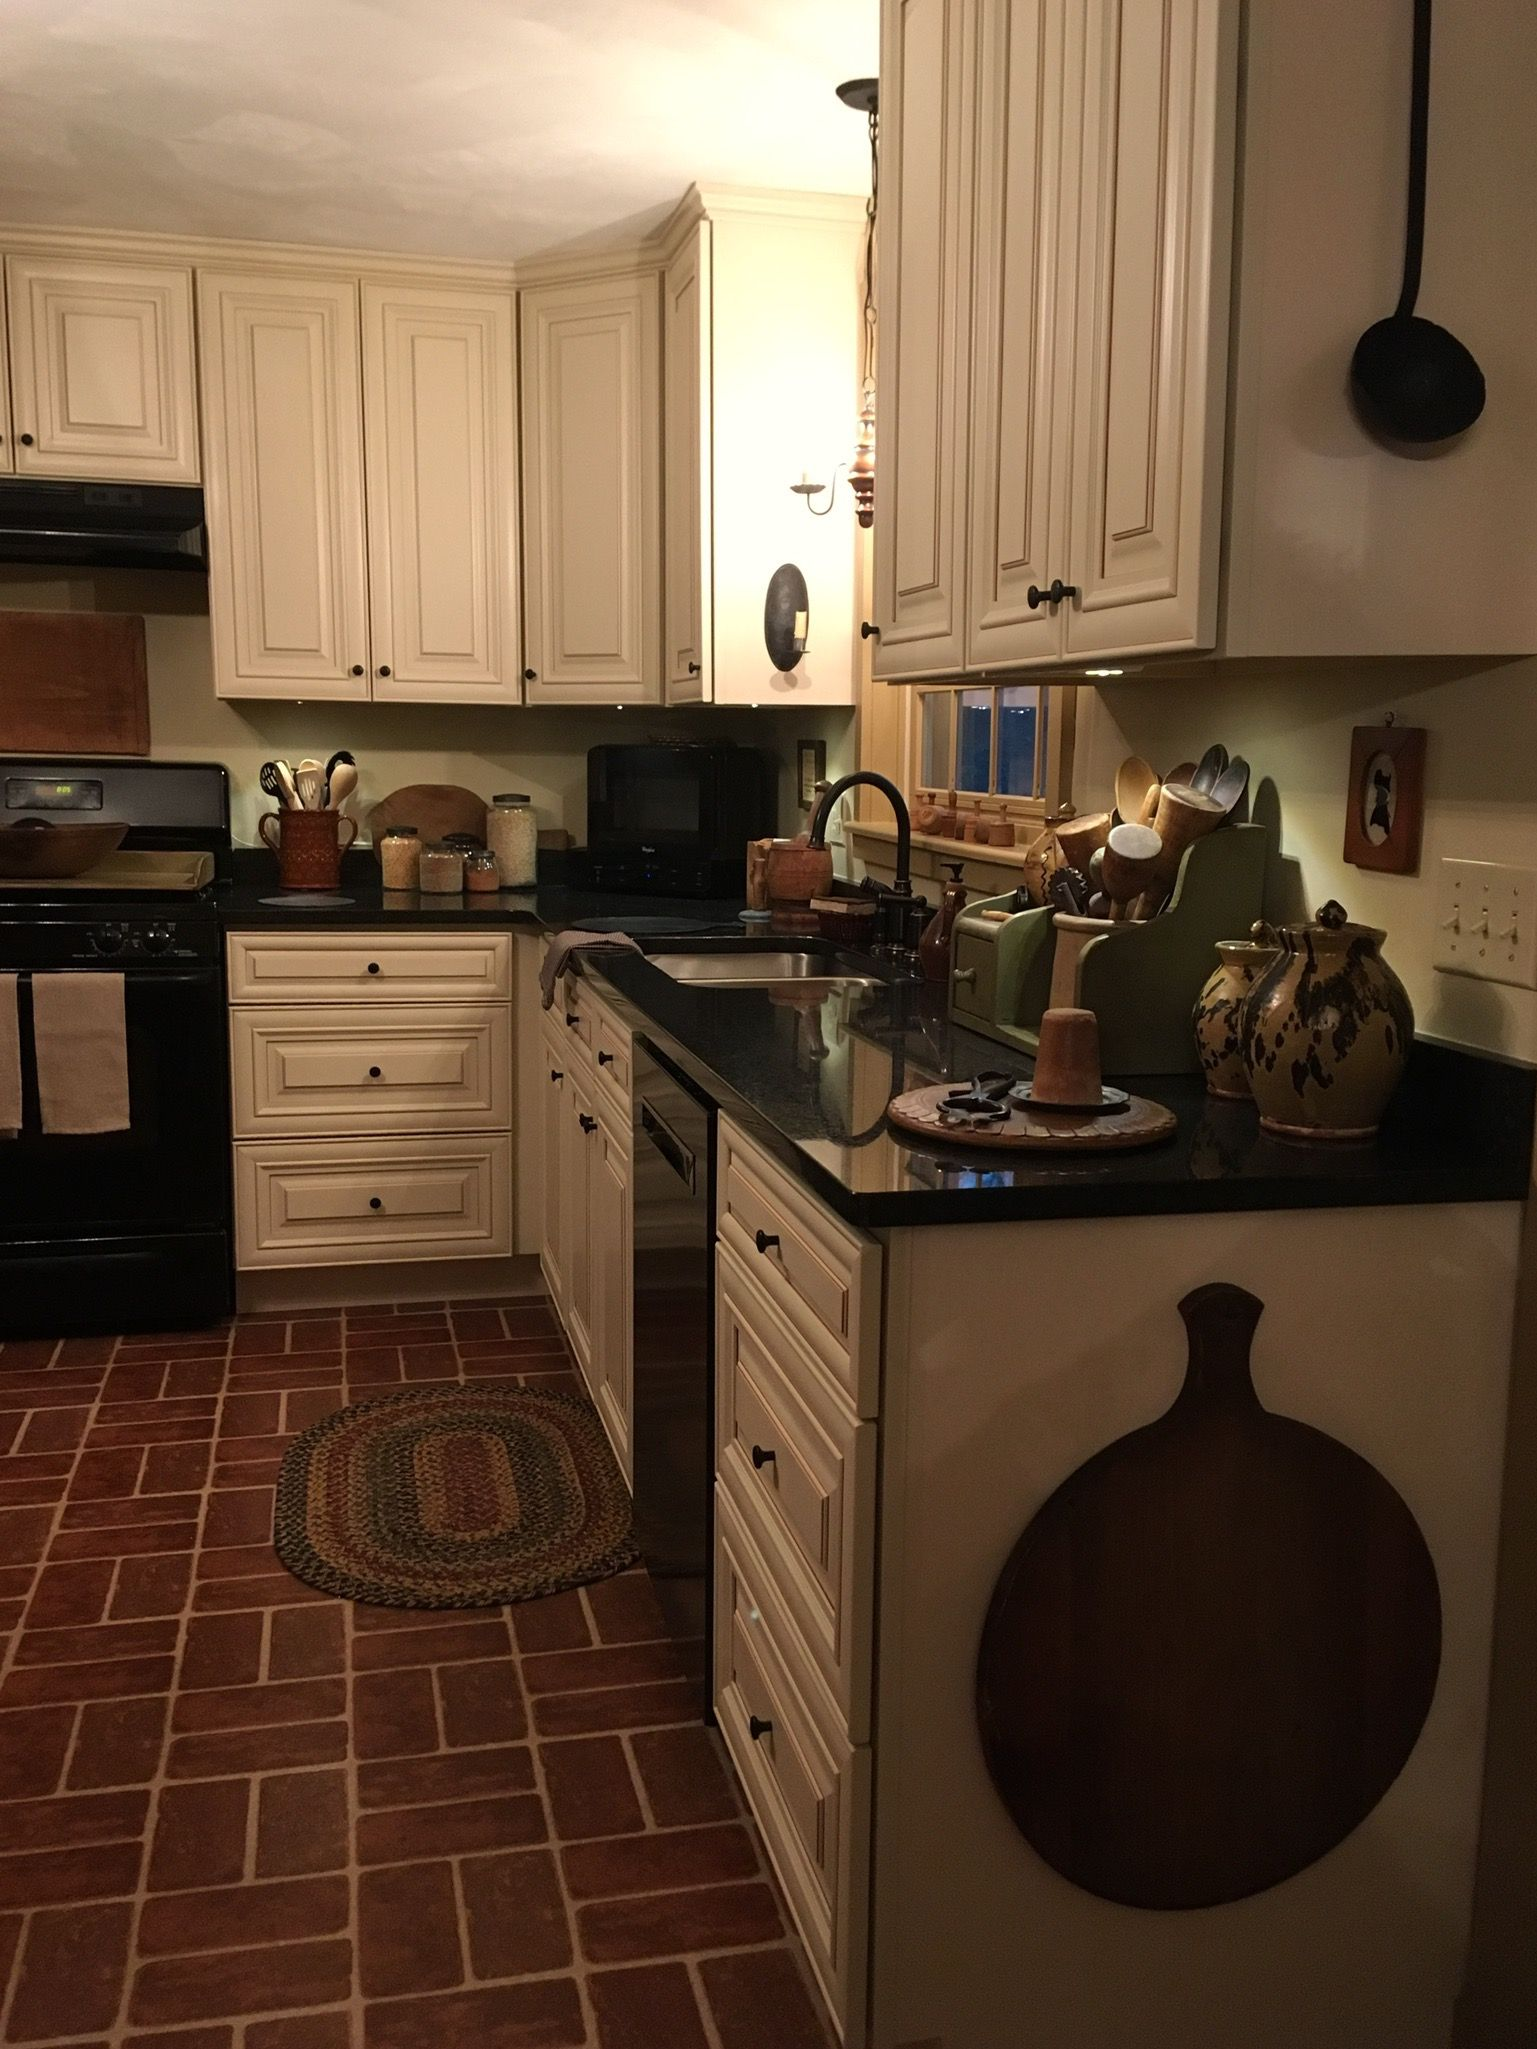 Best Kitchen Gallery: New Kitchen January 2018 Behind My Red Door Kitchen Country Prim of Country Colonial Kitchen Ideas on rachelxblog.com